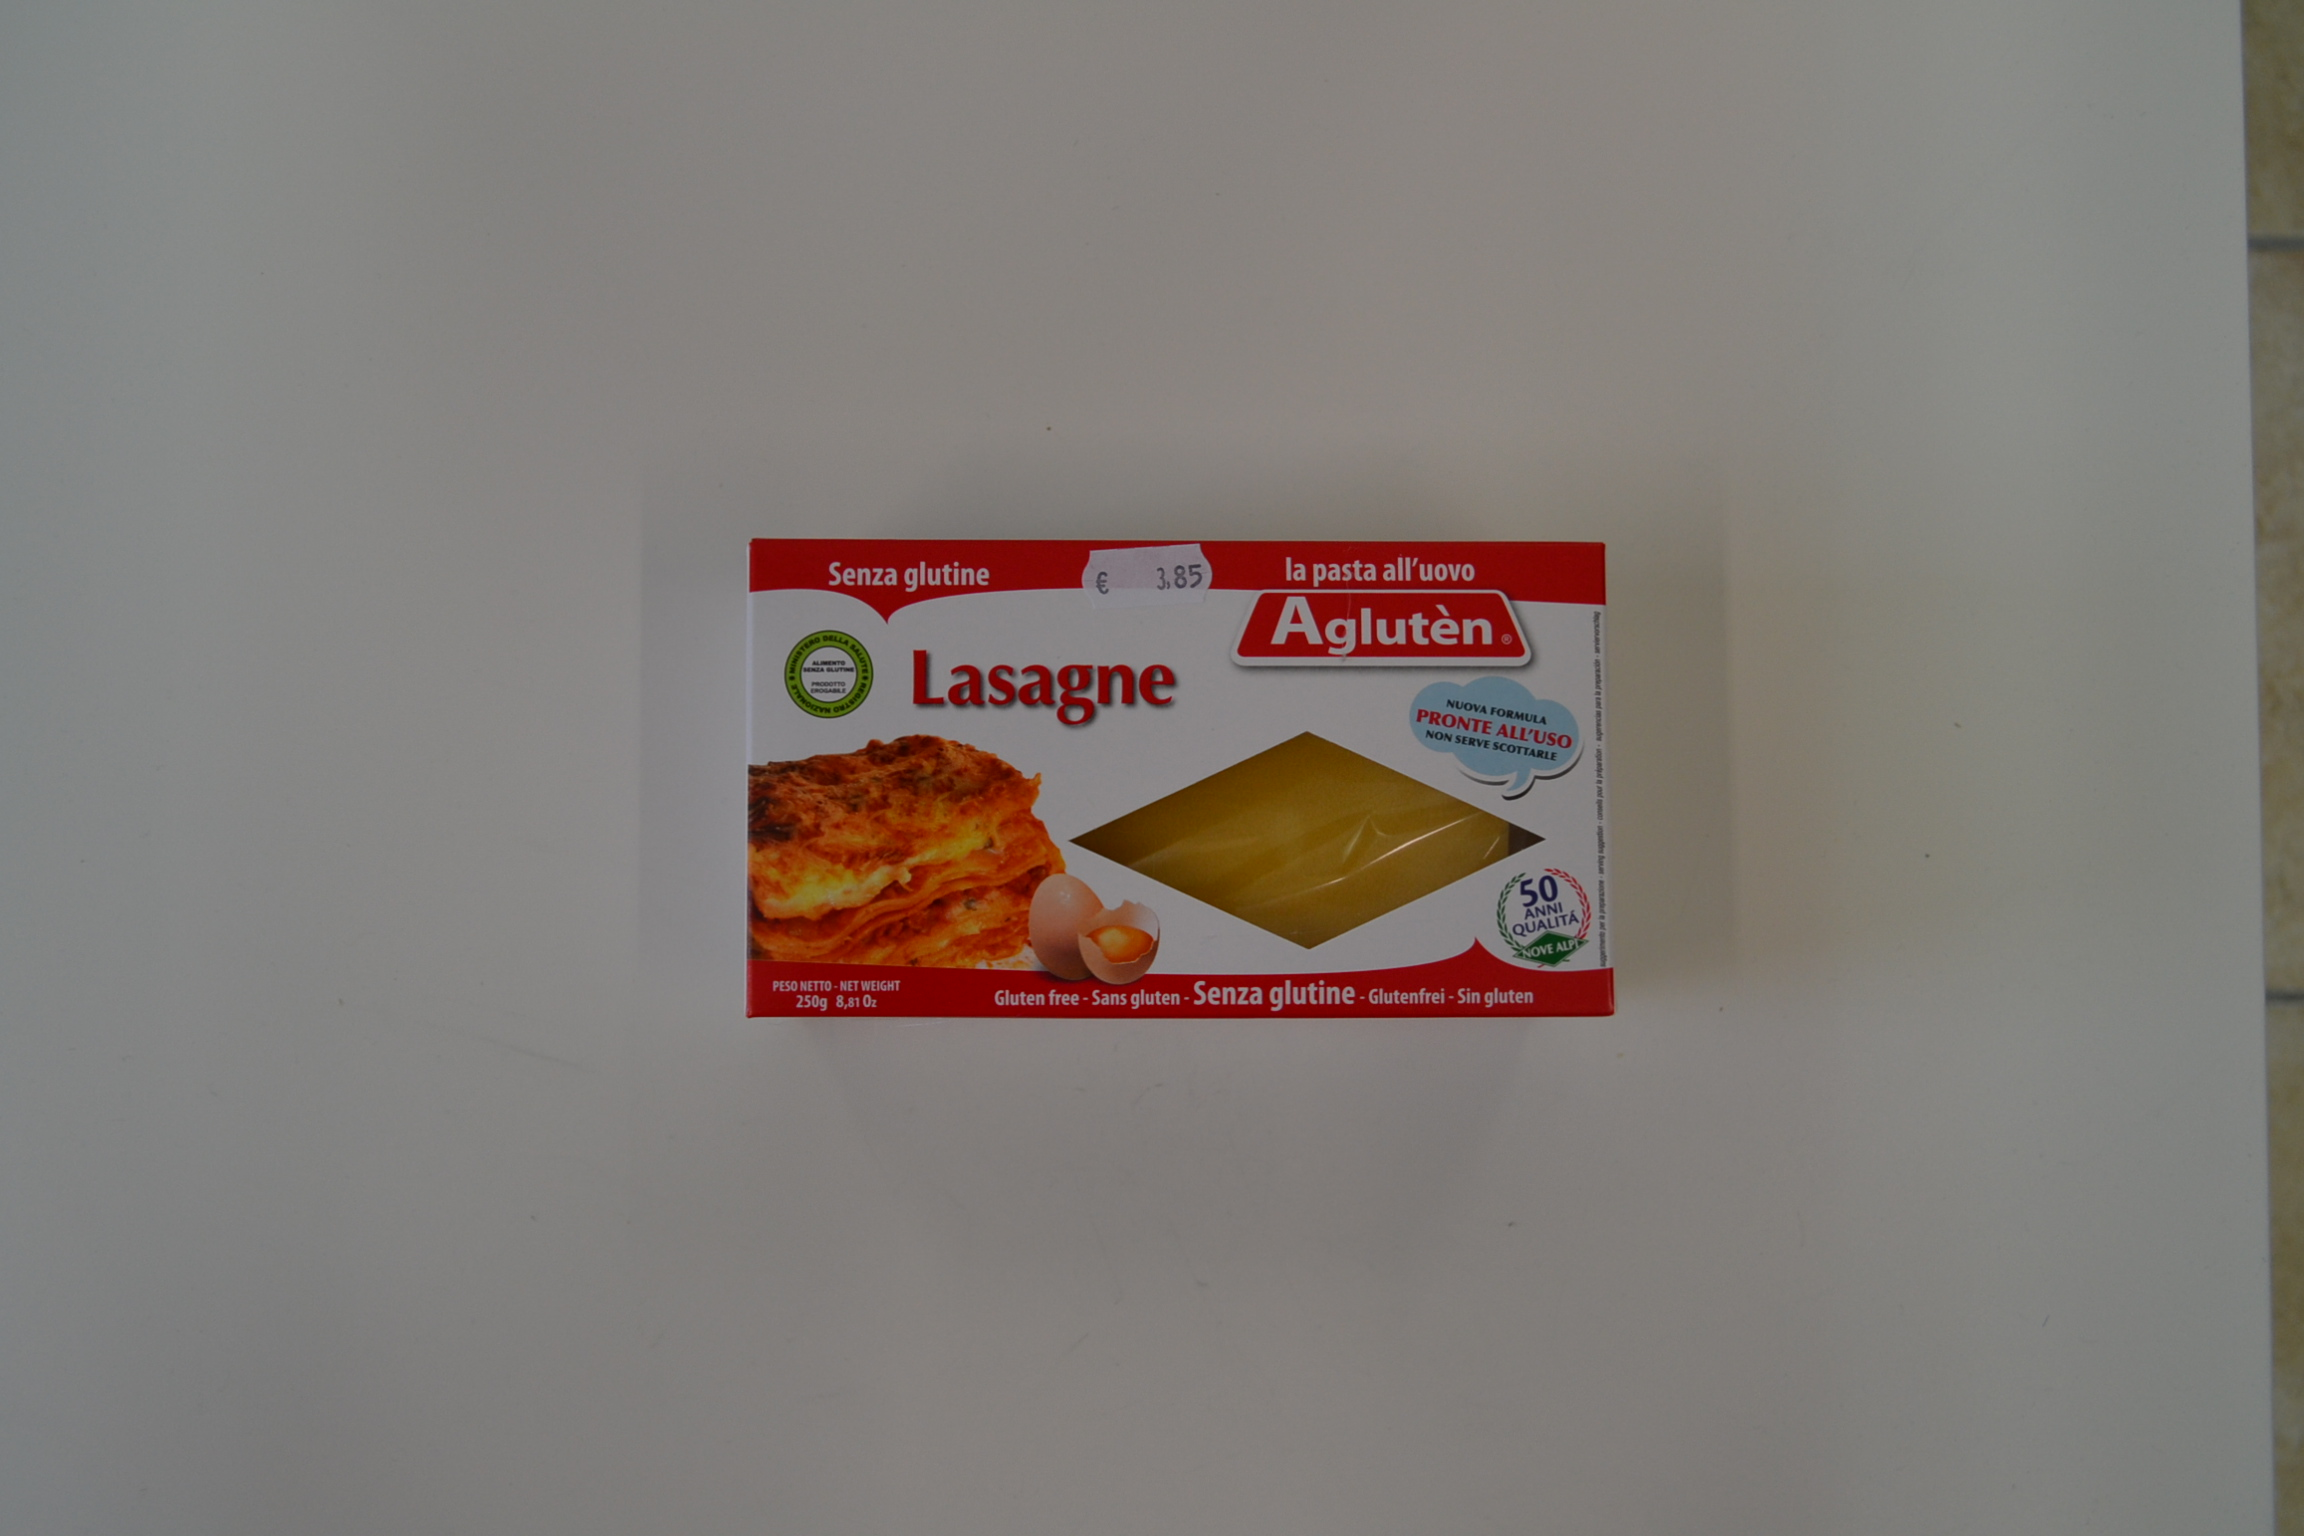 Lasagne all'uovo AGLUTEN € 3,85